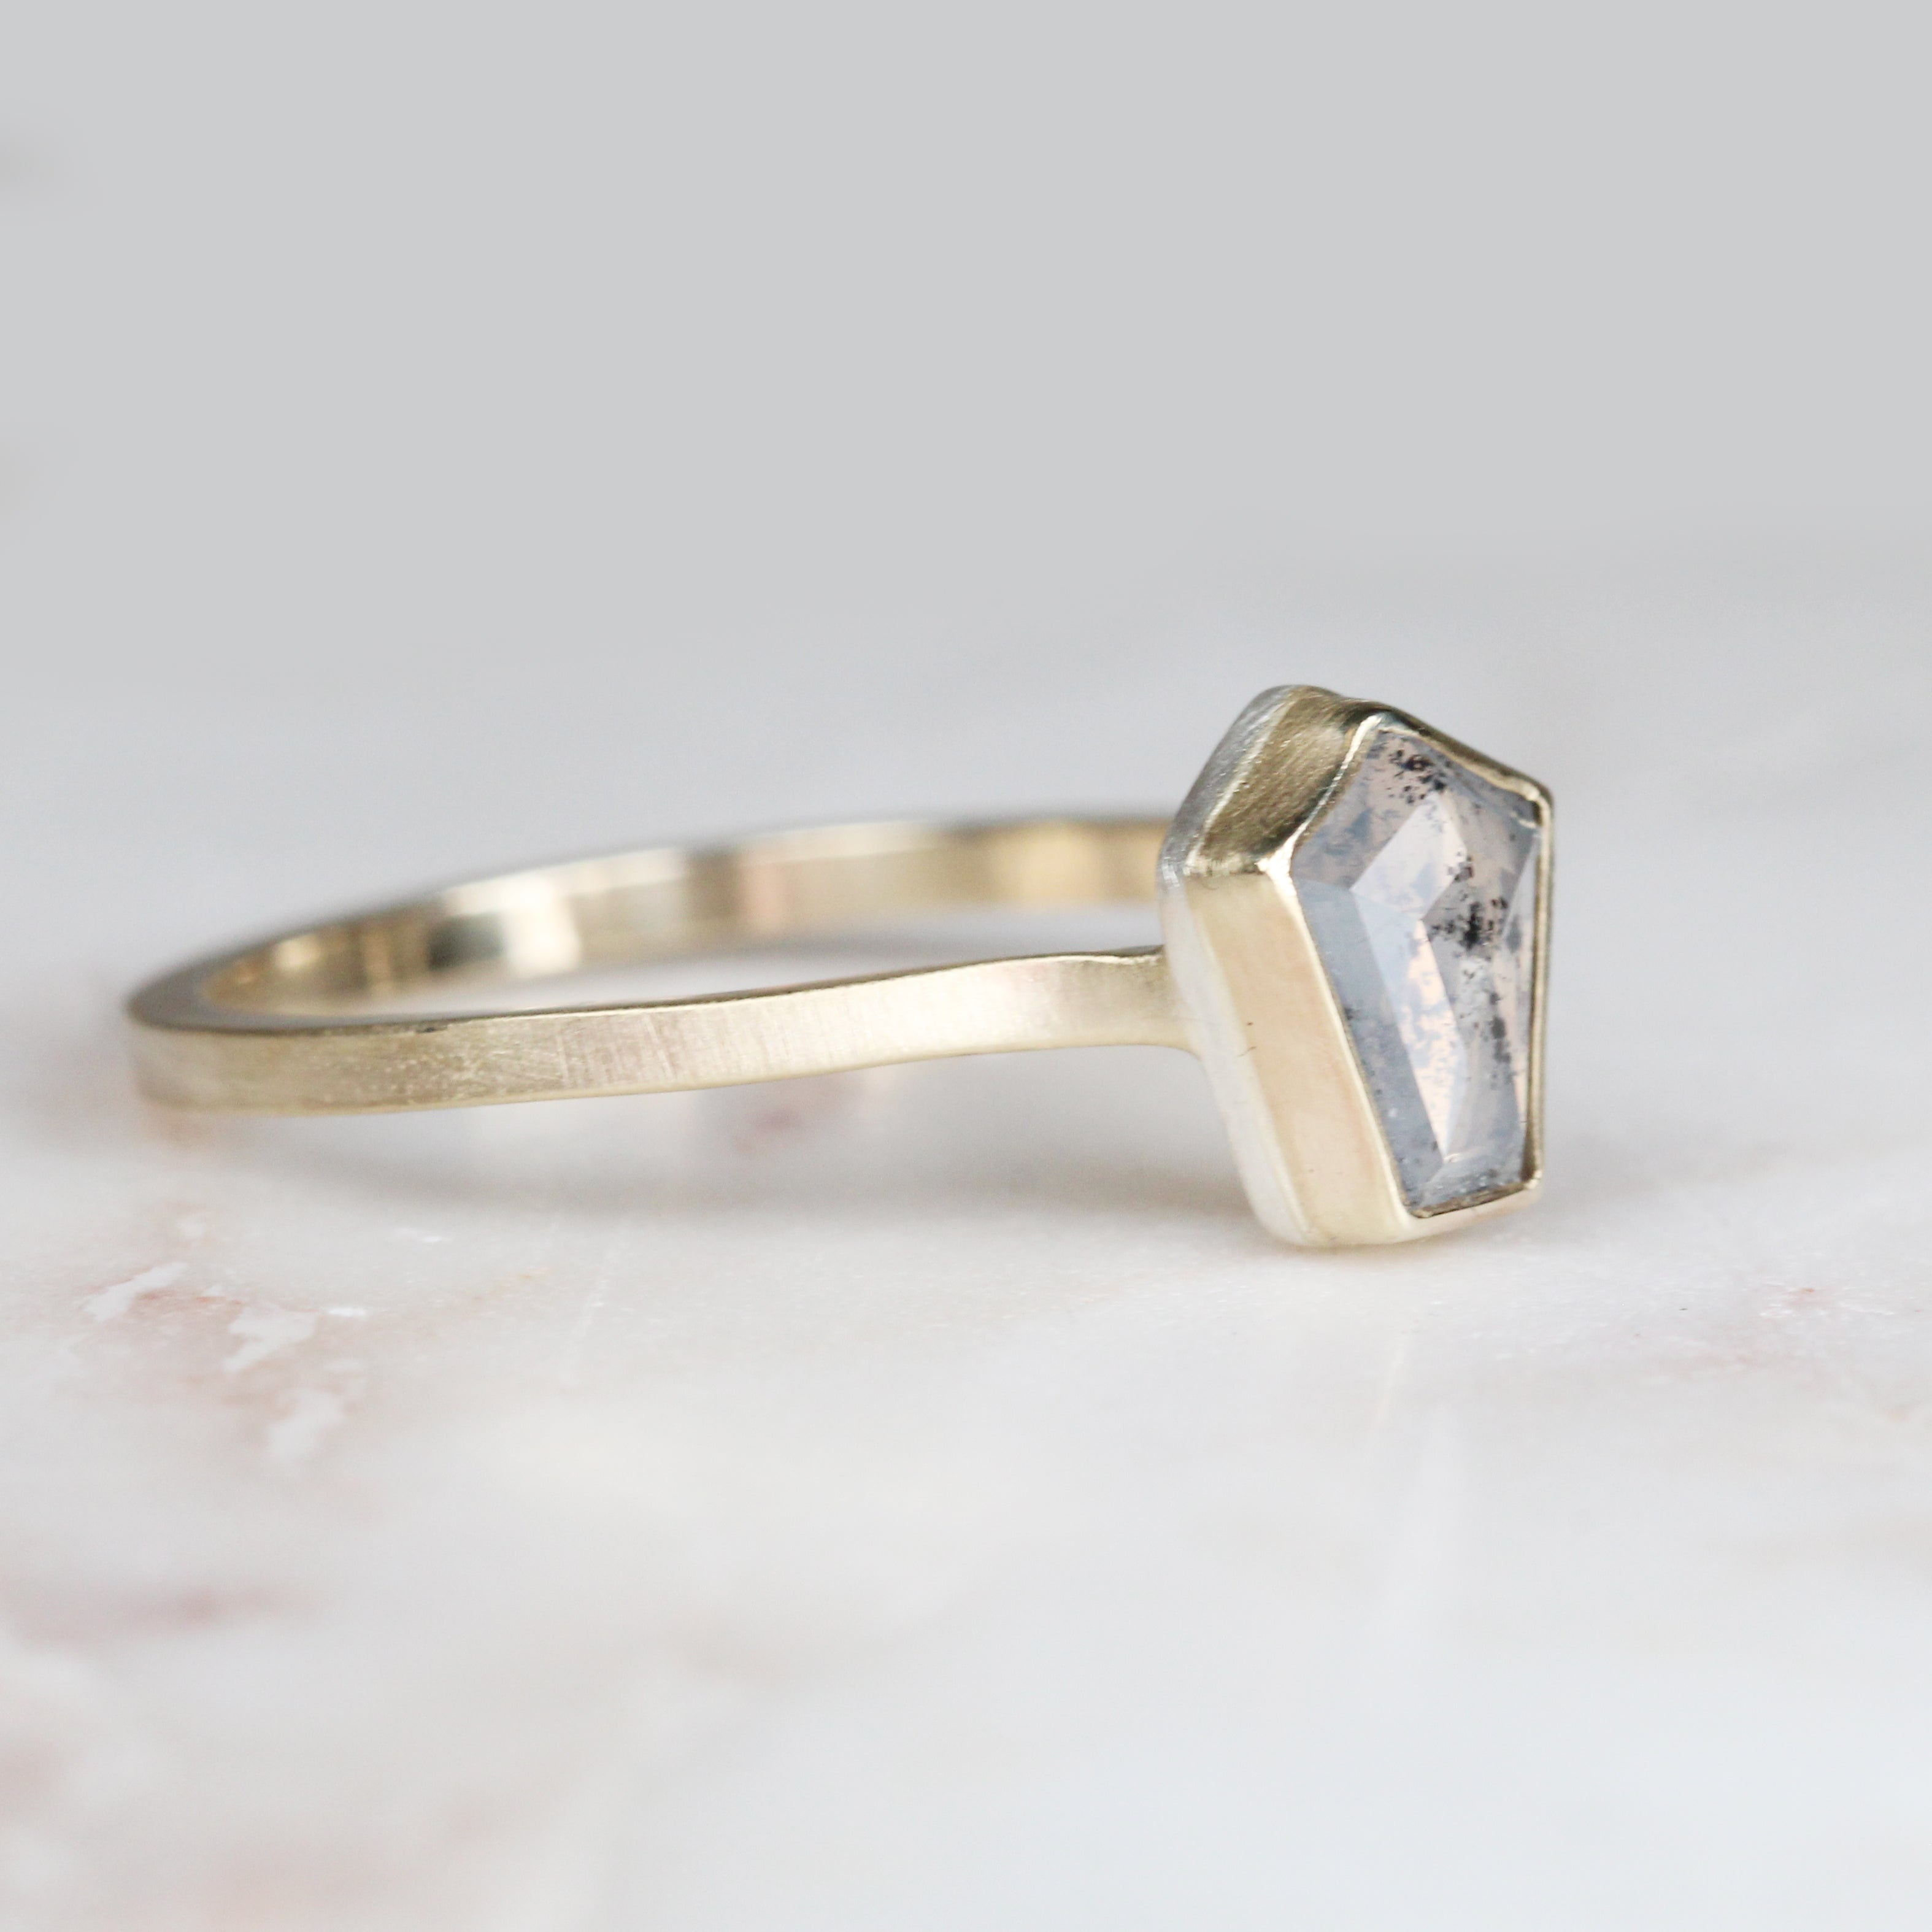 .75 carat milky gray / white pentagon geometric bezel set diamond solitaire ring - ready to size and ship - Salt & Pepper Celestial Diamond Engagement Rings and Wedding Bands  by Midwinter Co.